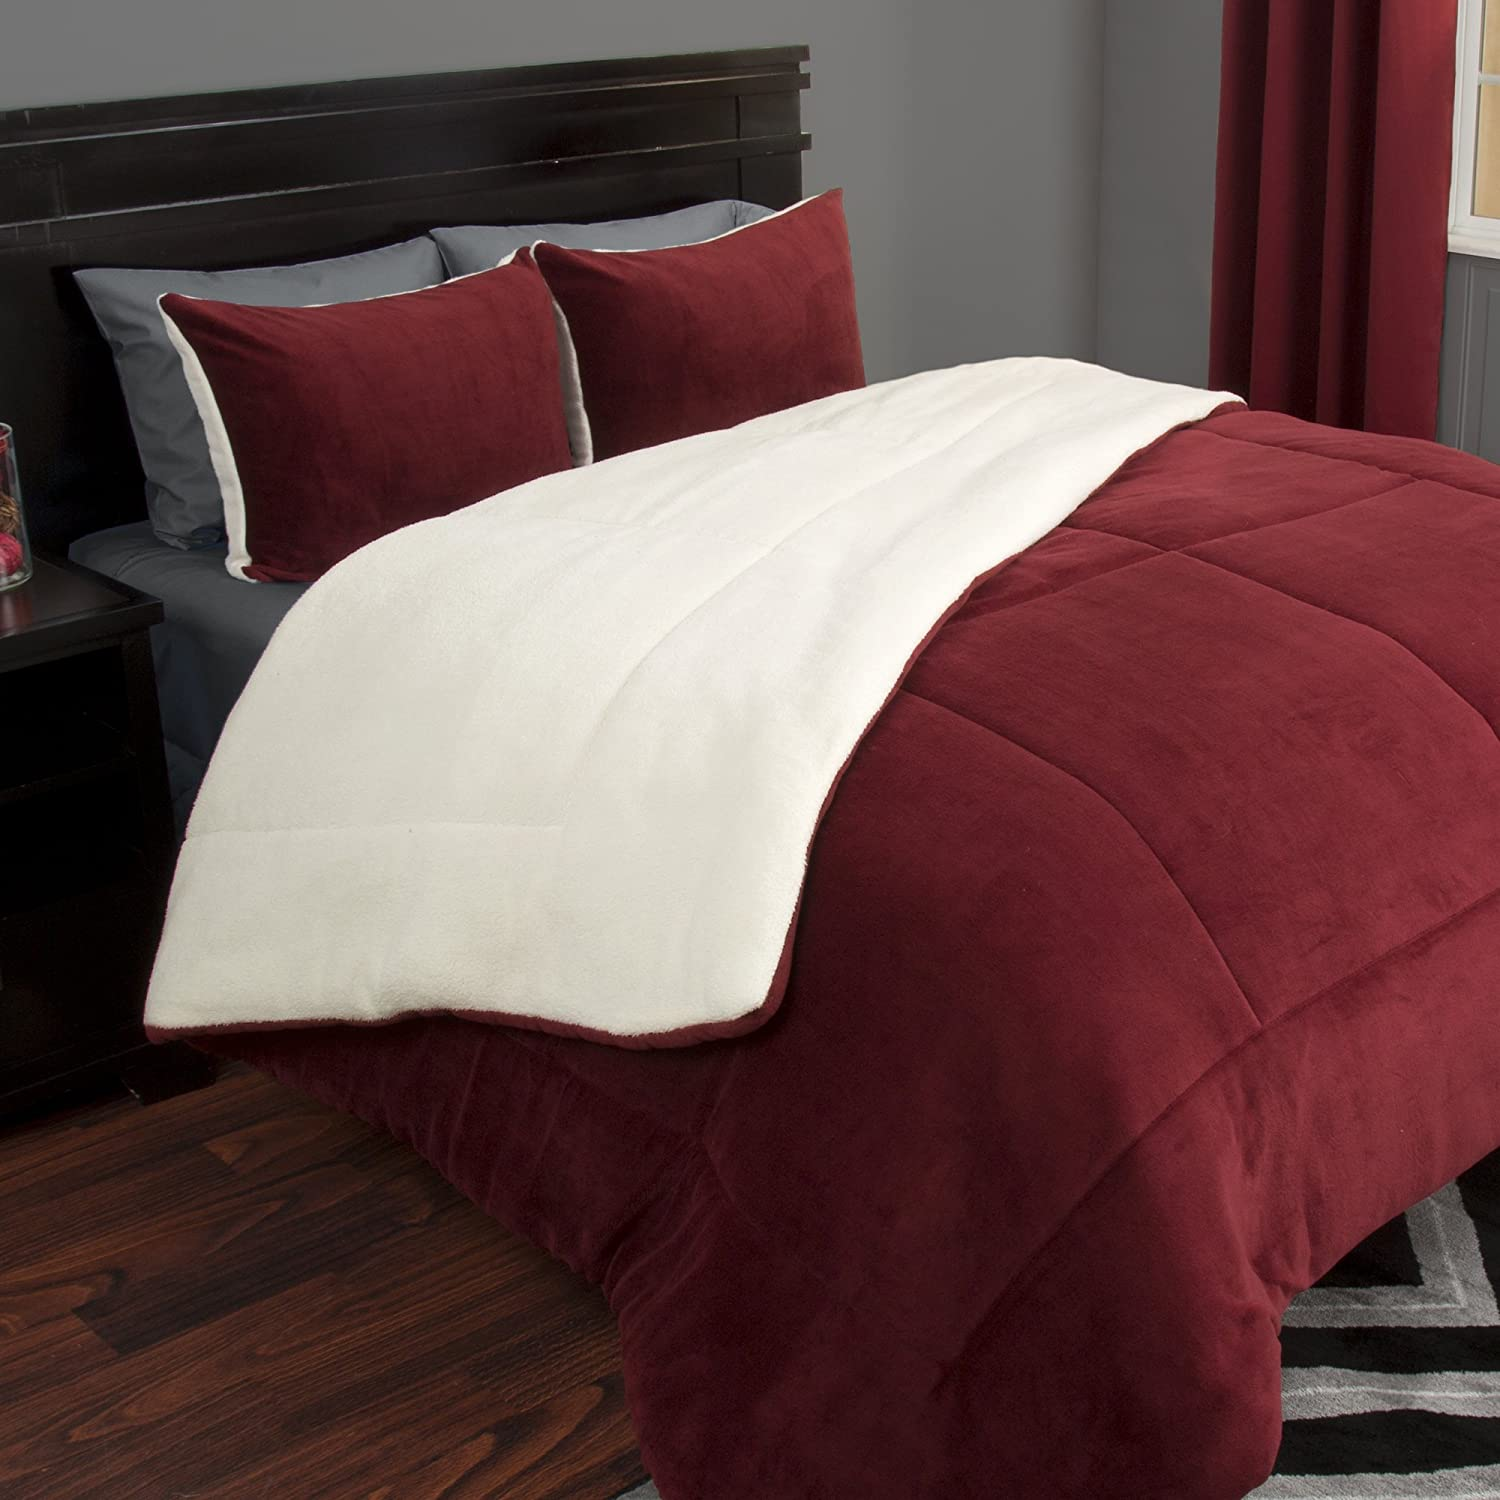 Fleece Comforter Set, King, Burgundy, Burgundy